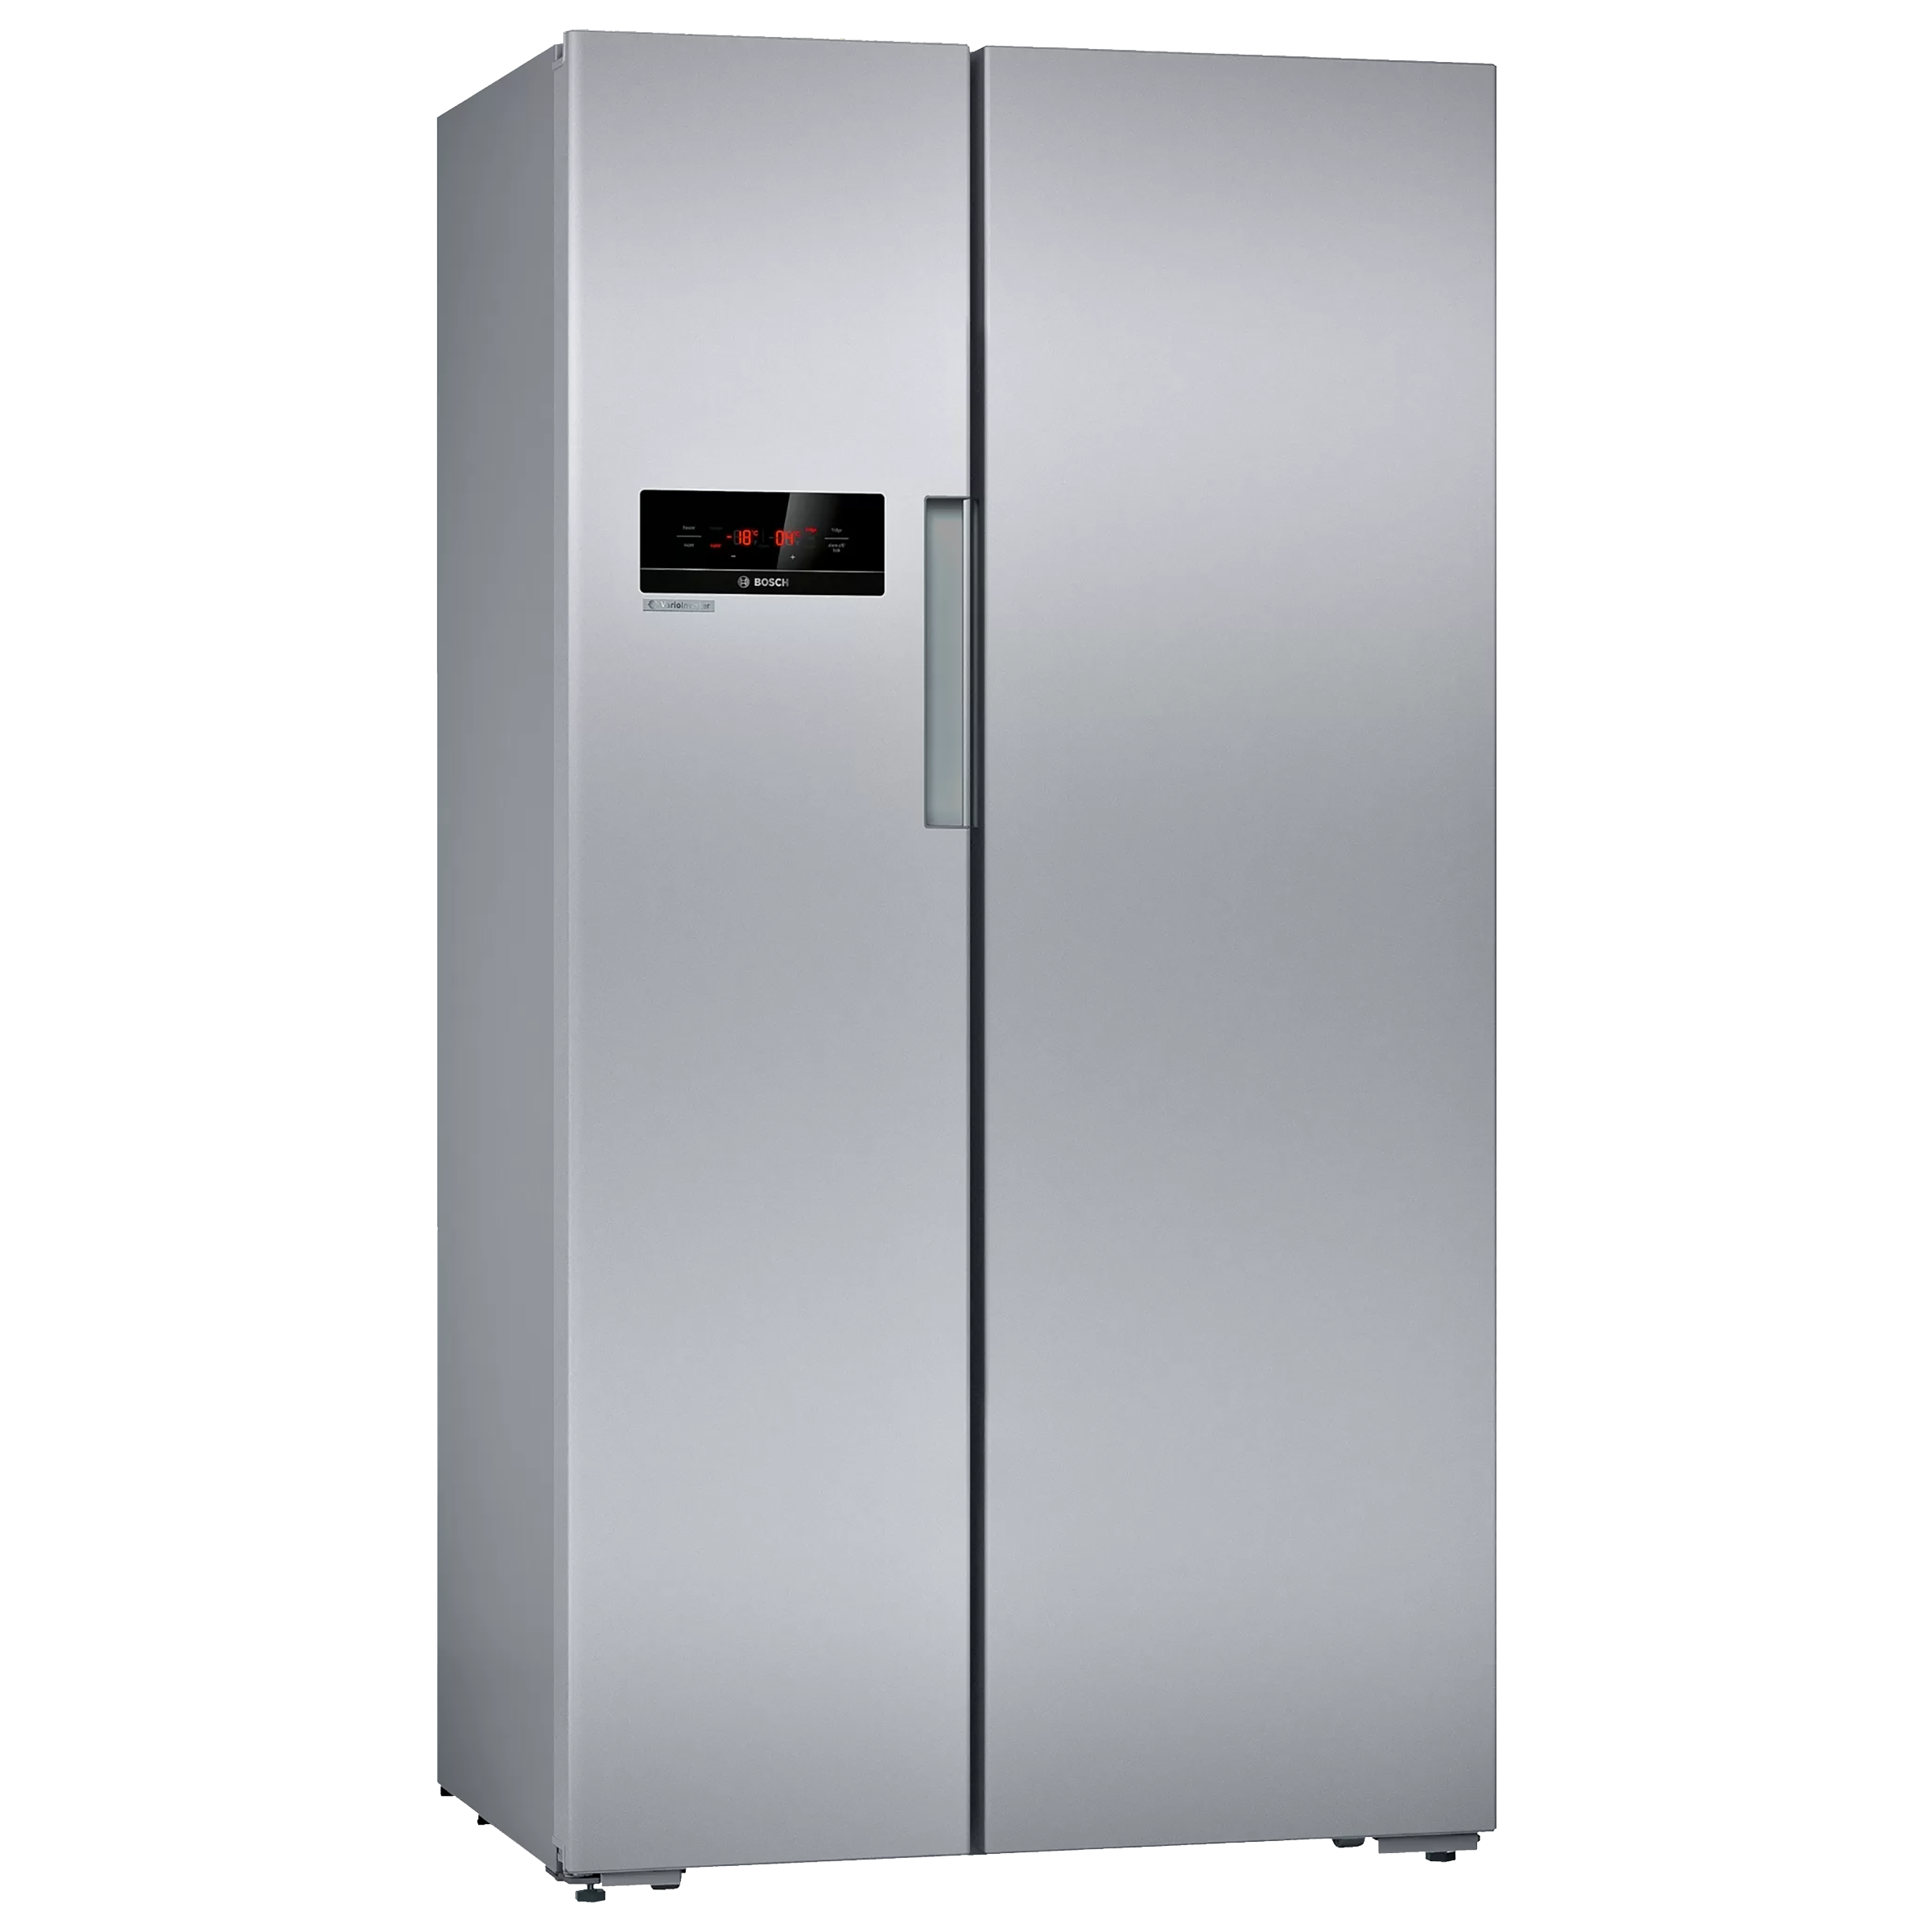 Bosch Serie 2 658 Litres Frost Free Inverter Side-by-Side Door Refrigerator (Multi Airflow System, KAN92VS30I, Silver)_1